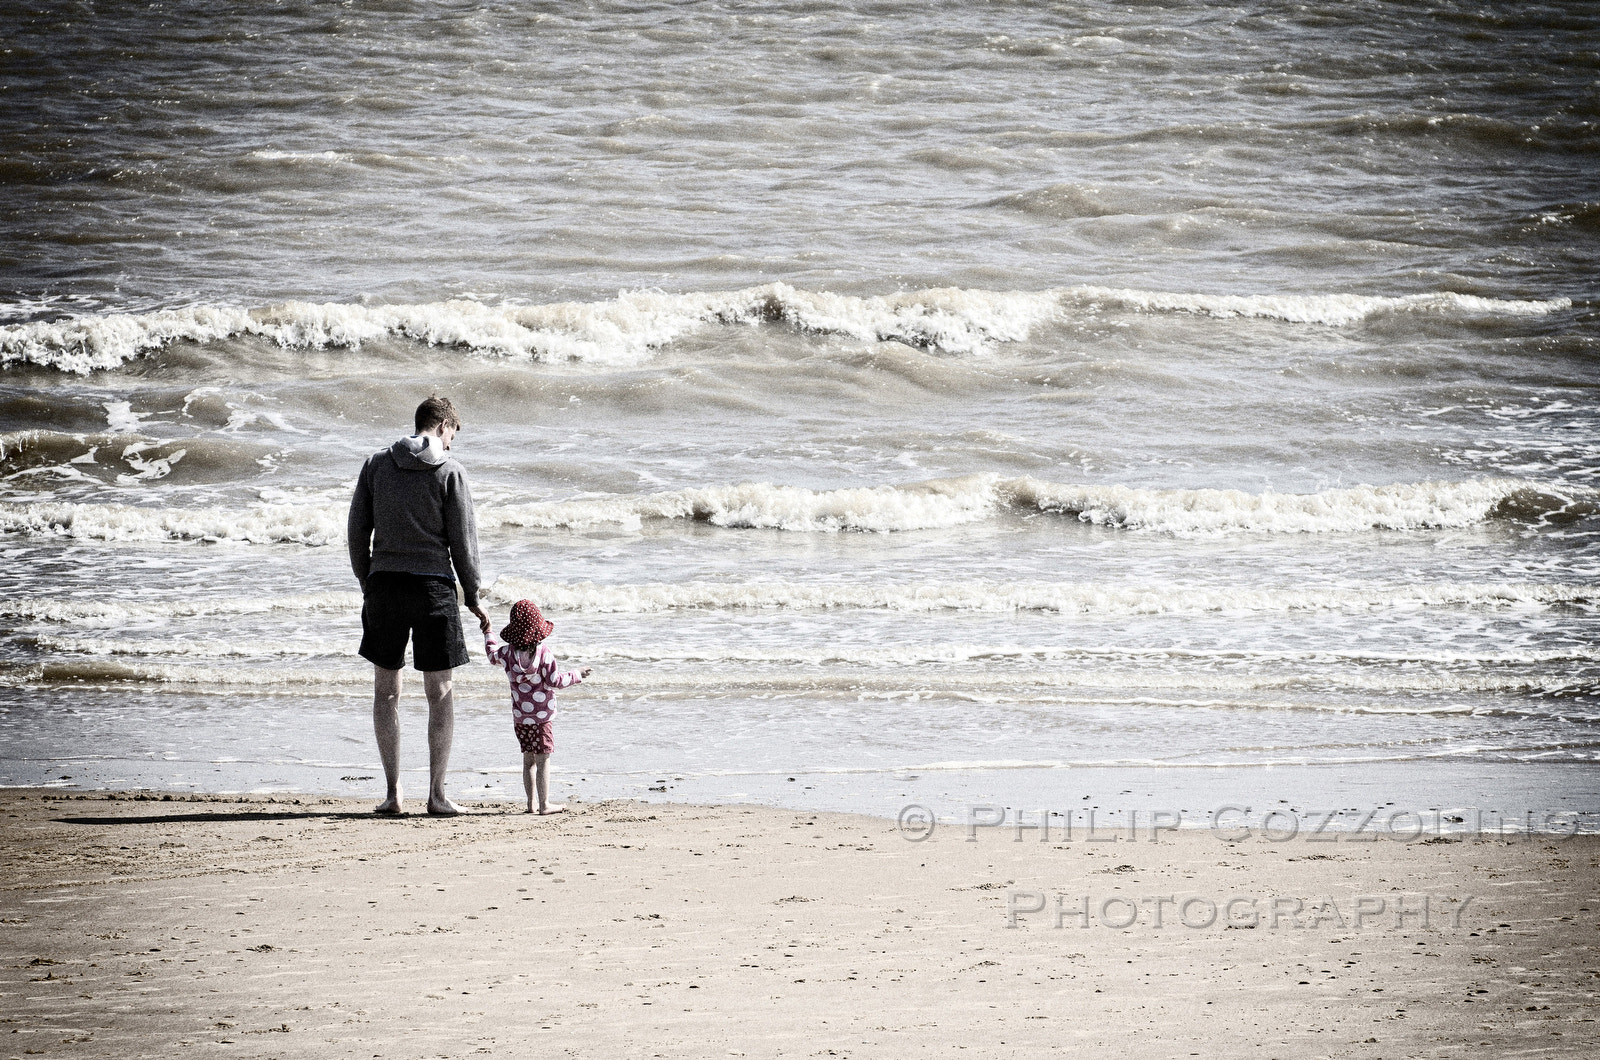 Photograph Father and Daughter by Philip Cozzolino on 500px